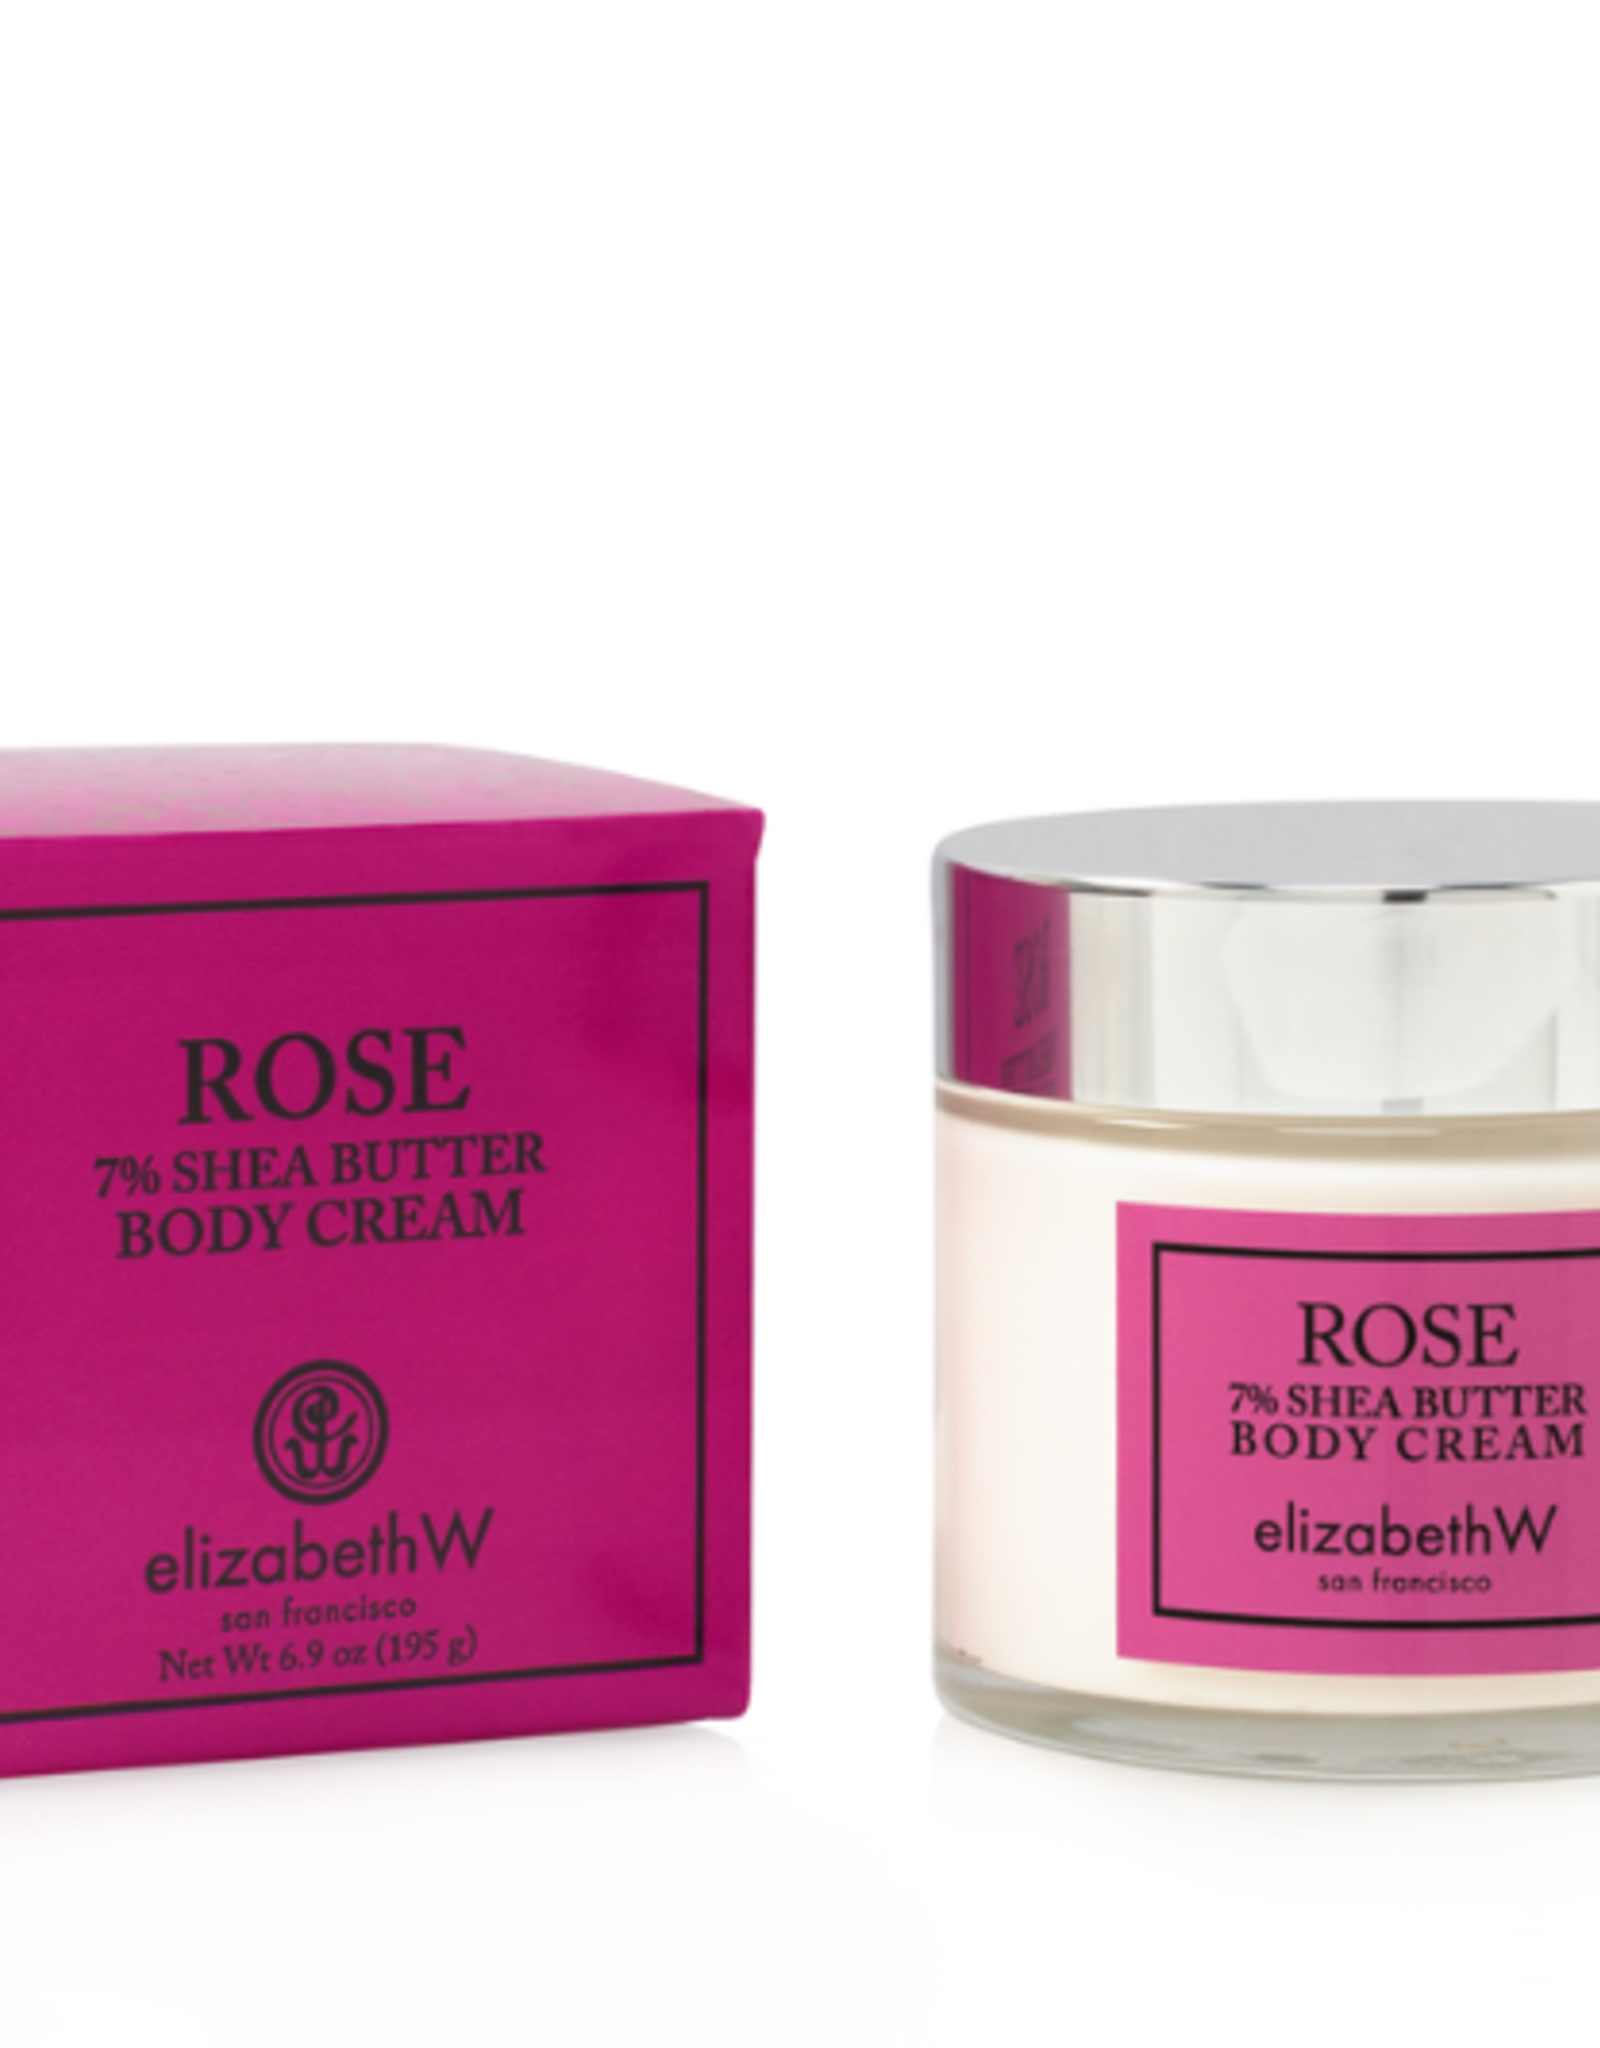 elizabeth W Body Cream